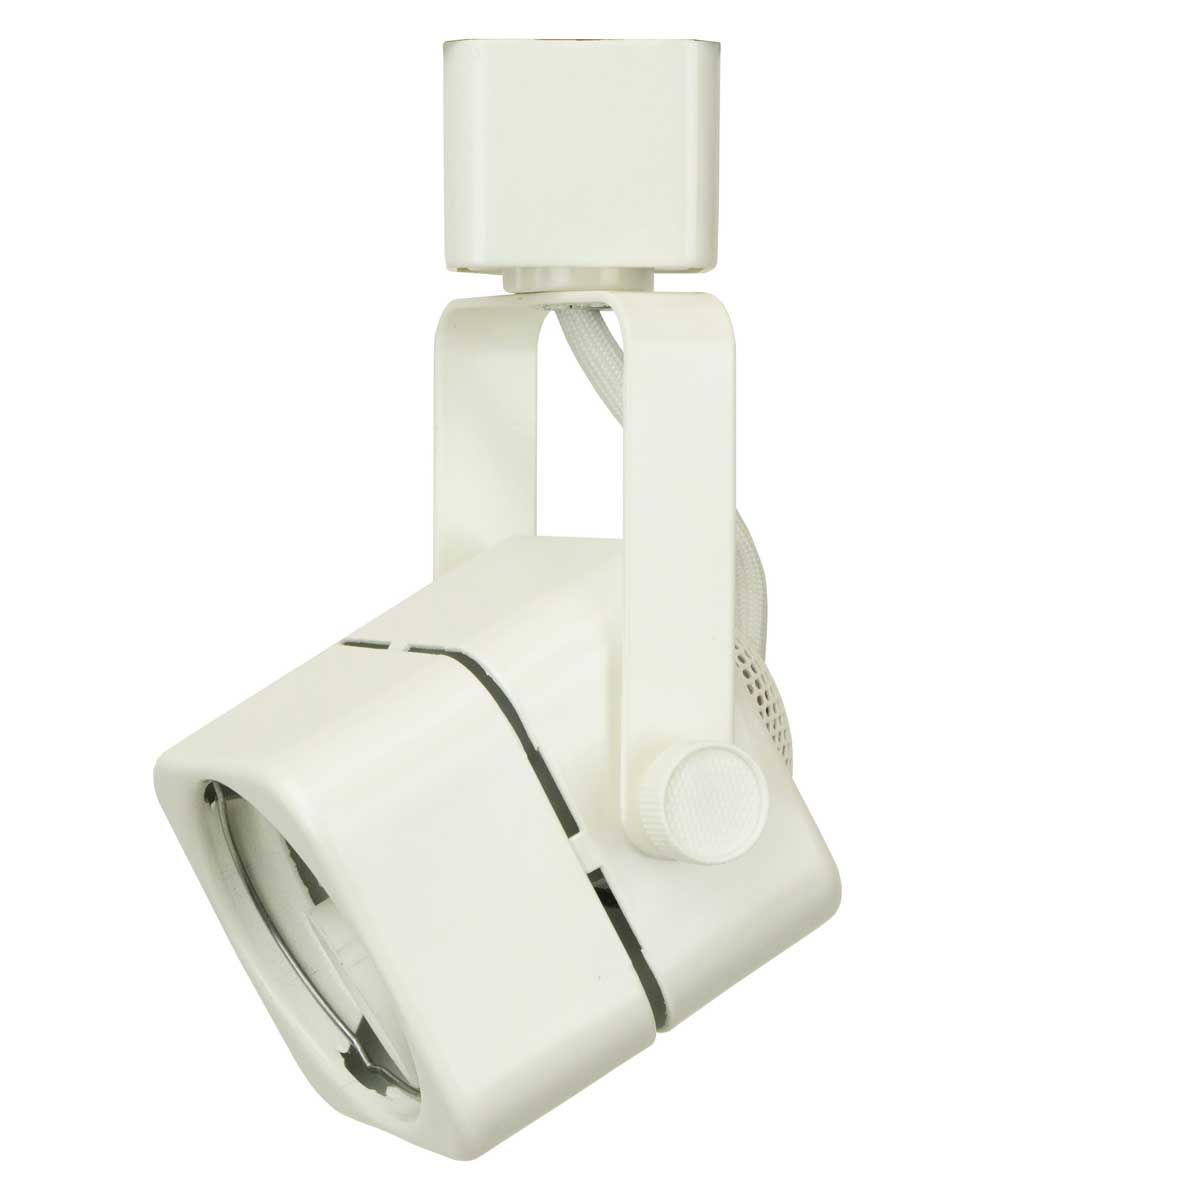 GU10 50W 120V Track Lighting Fixture 50155-WH White